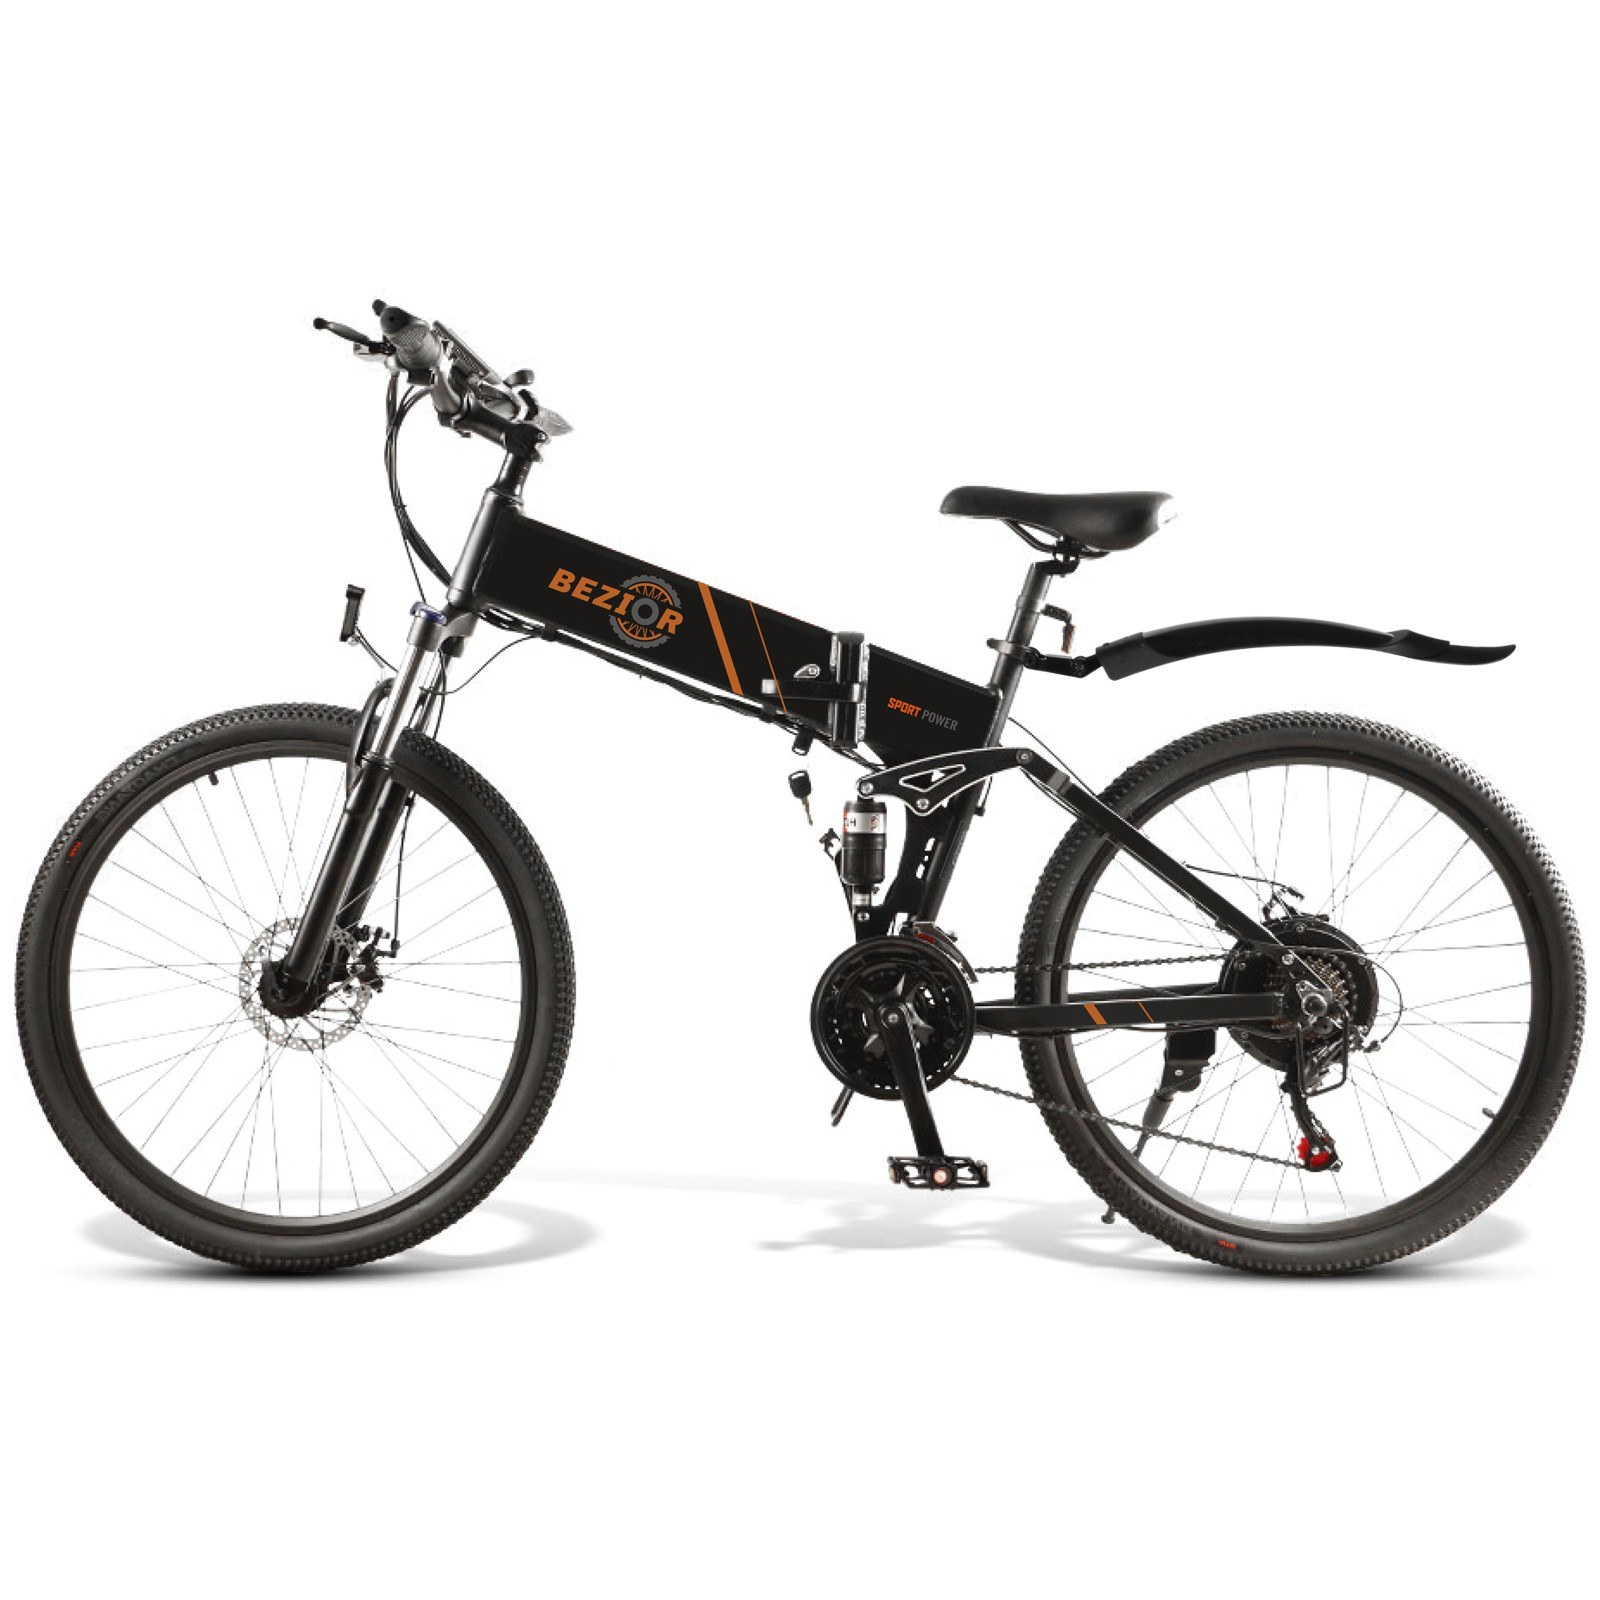 tomtop.com - [EU Warehouse] 50% OFF BEZIOR M26 500W 26 Inch Folding Electric Bicycle, $945.99 (Inclusive of VAT)